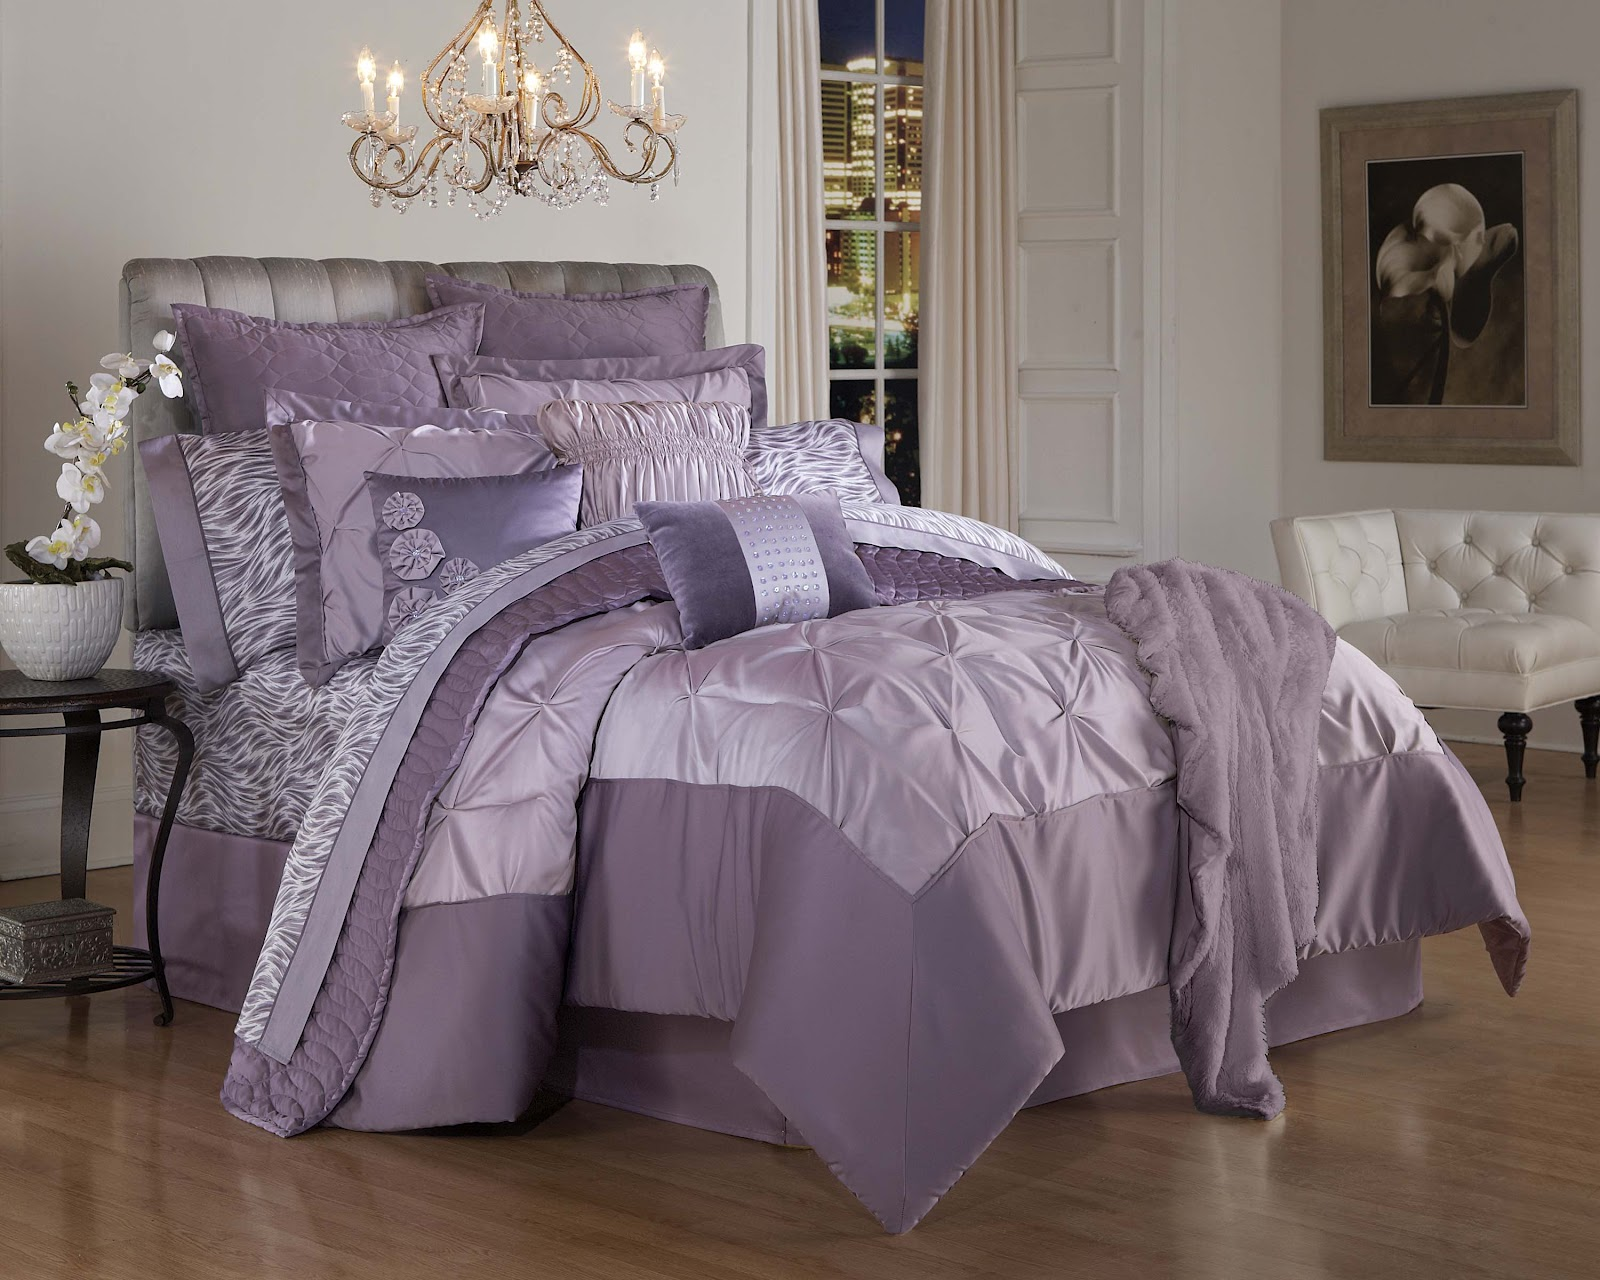 Sleep With the Kardashians' Bedding Collection at Sears